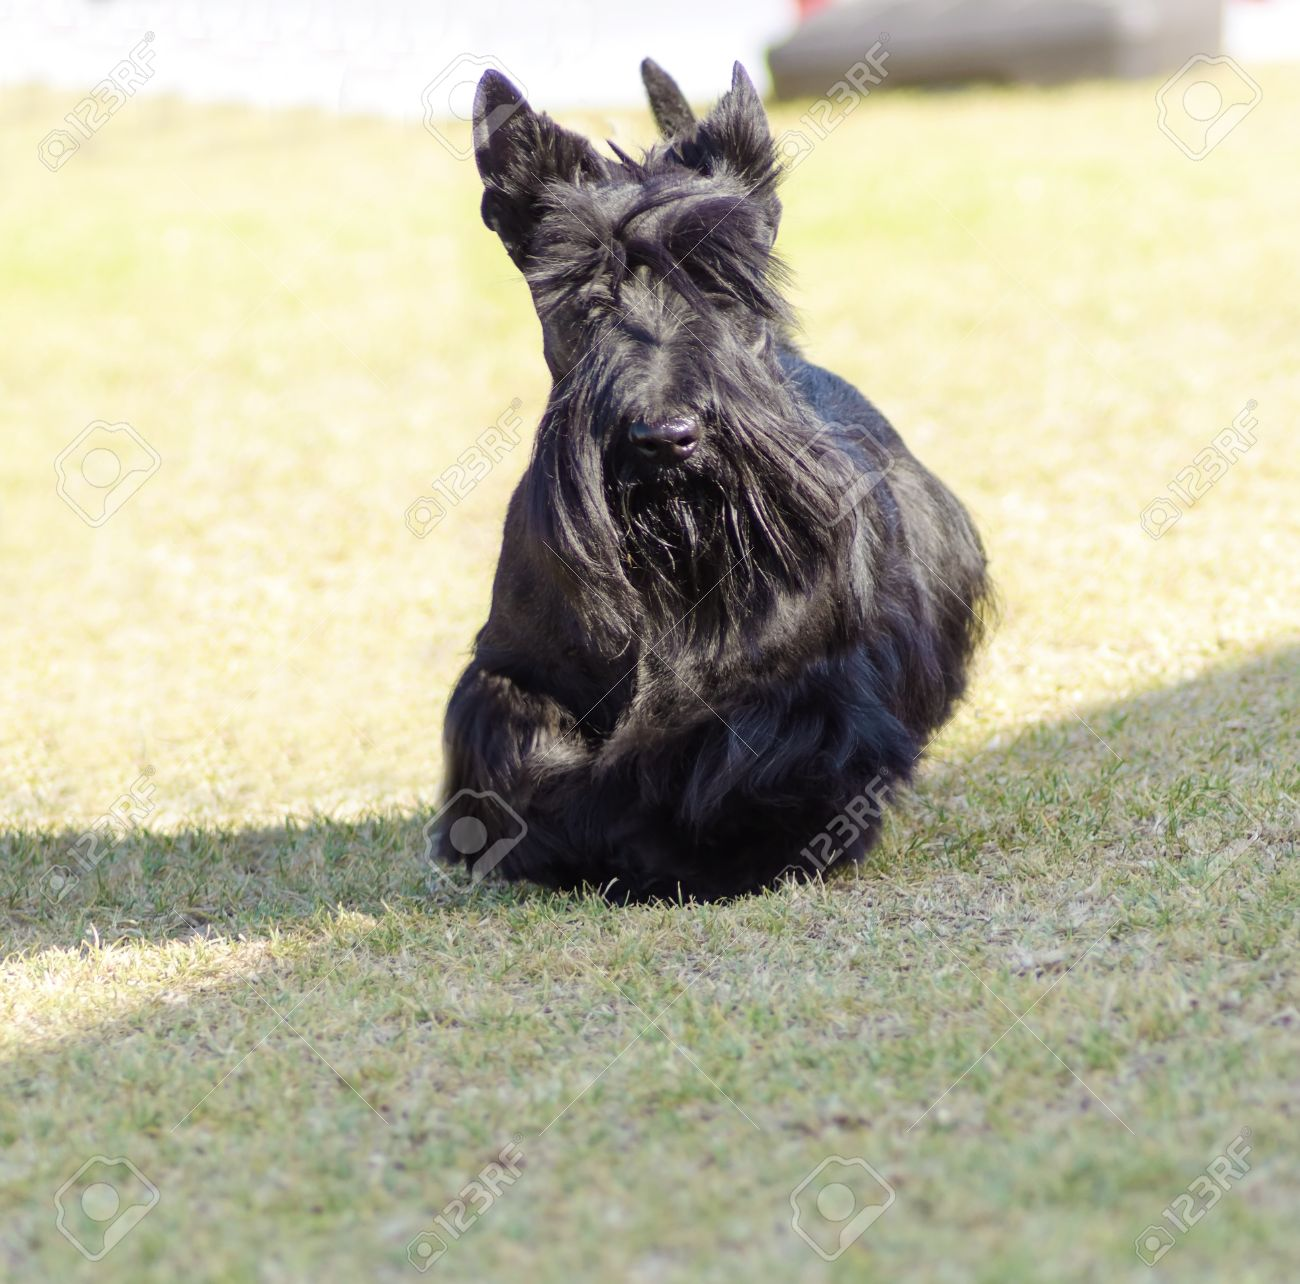 A View Of A Small Young And Beautiful Scottish Terrier Dog Walking